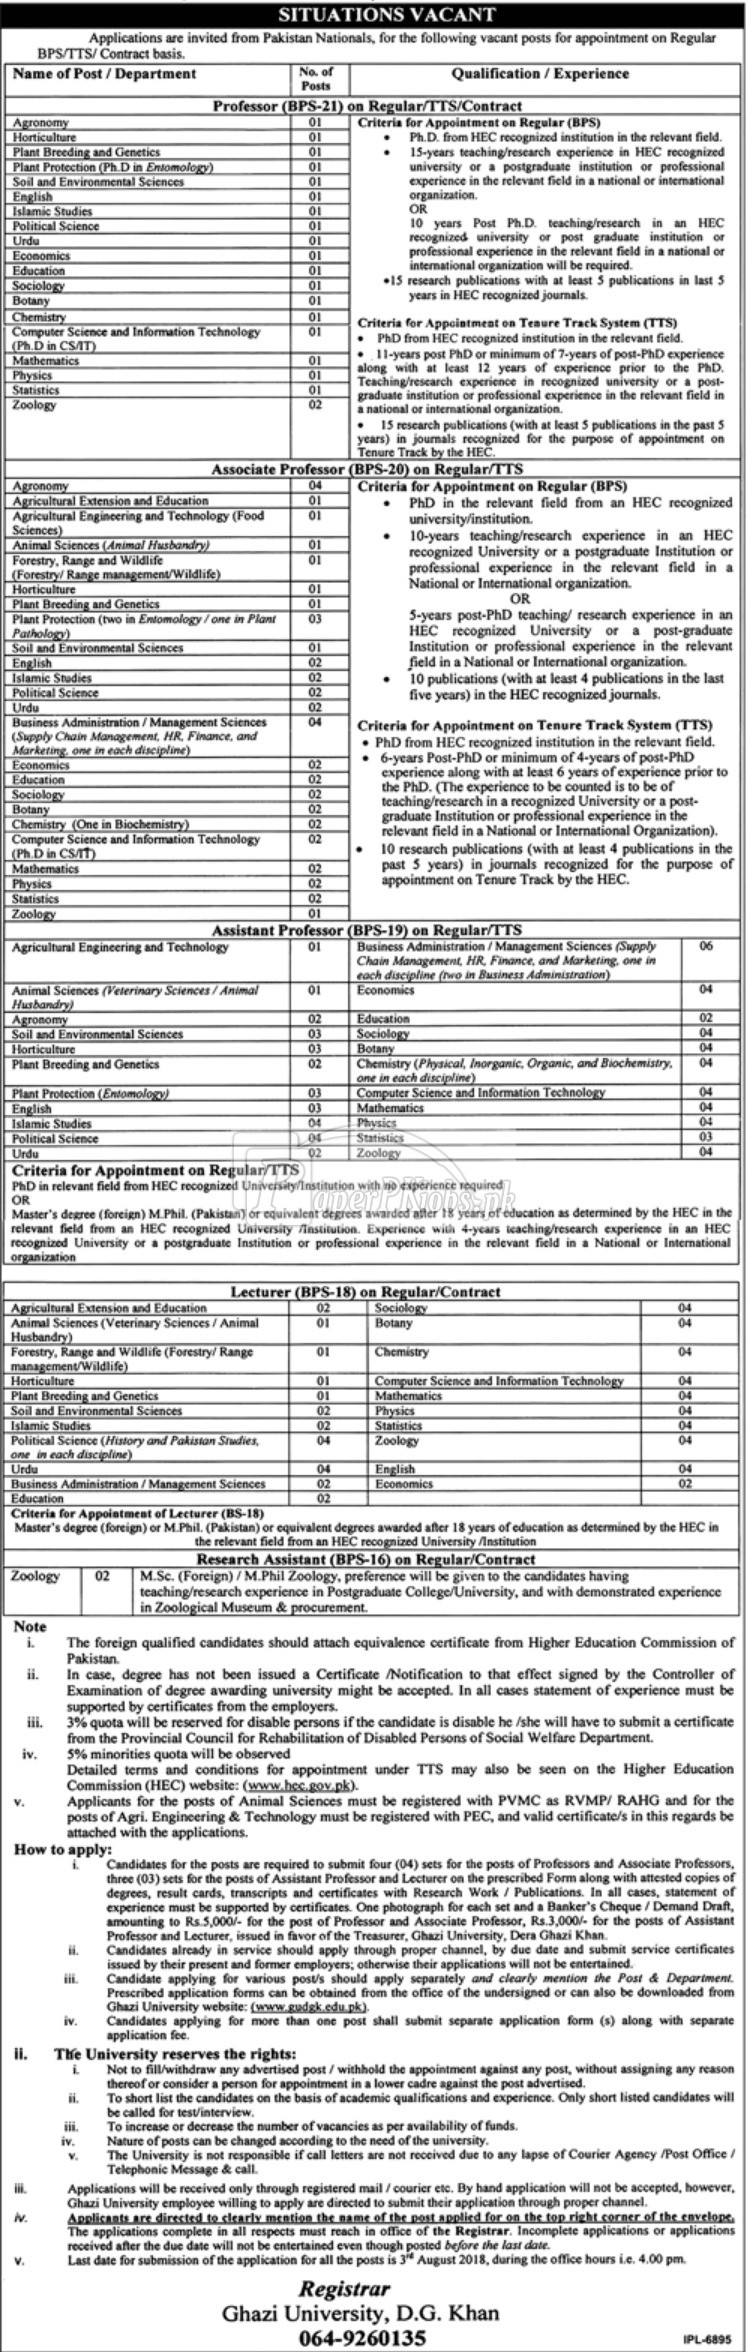 Ghazi University D.G.Khan Jobs 2018